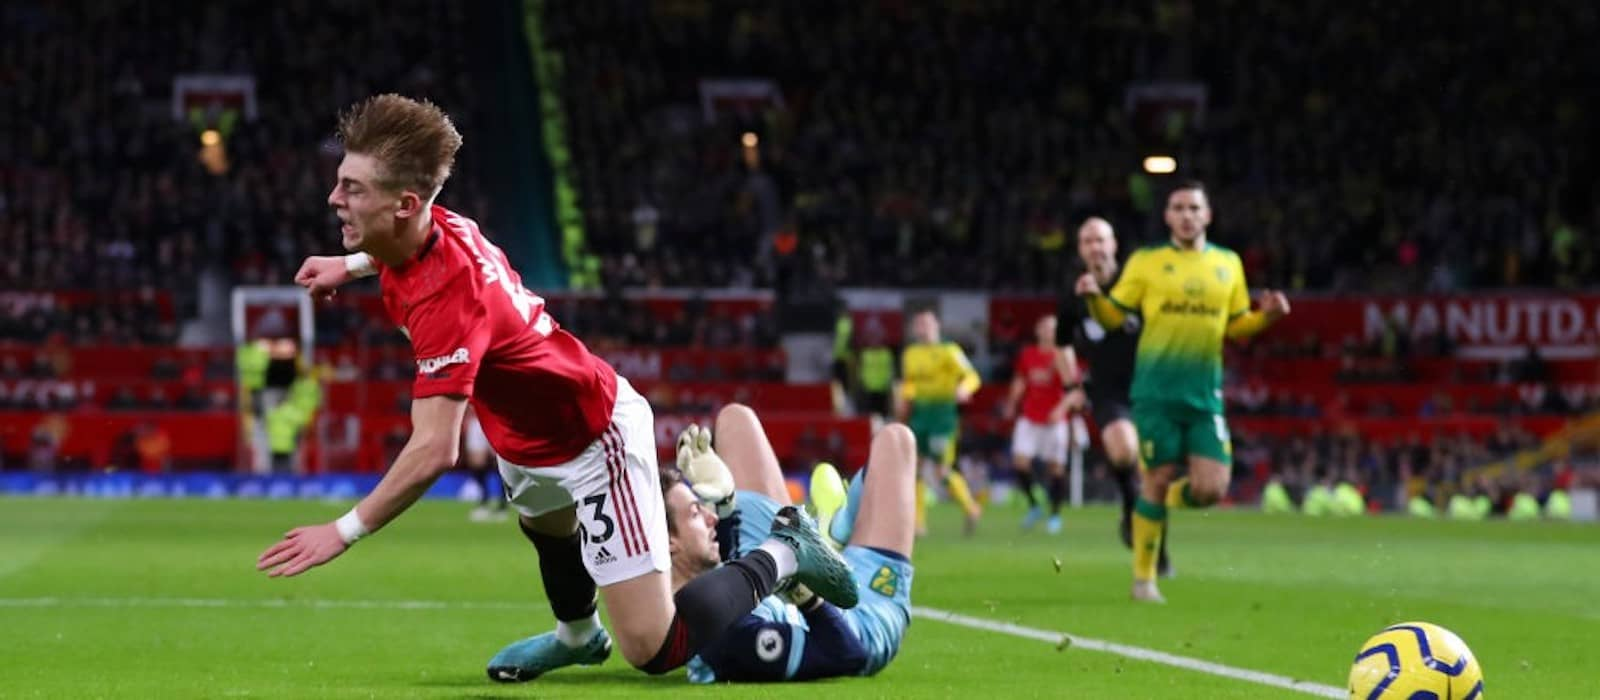 Brandon Williams dazzles with energetic Manchester United display vs. Norwich City